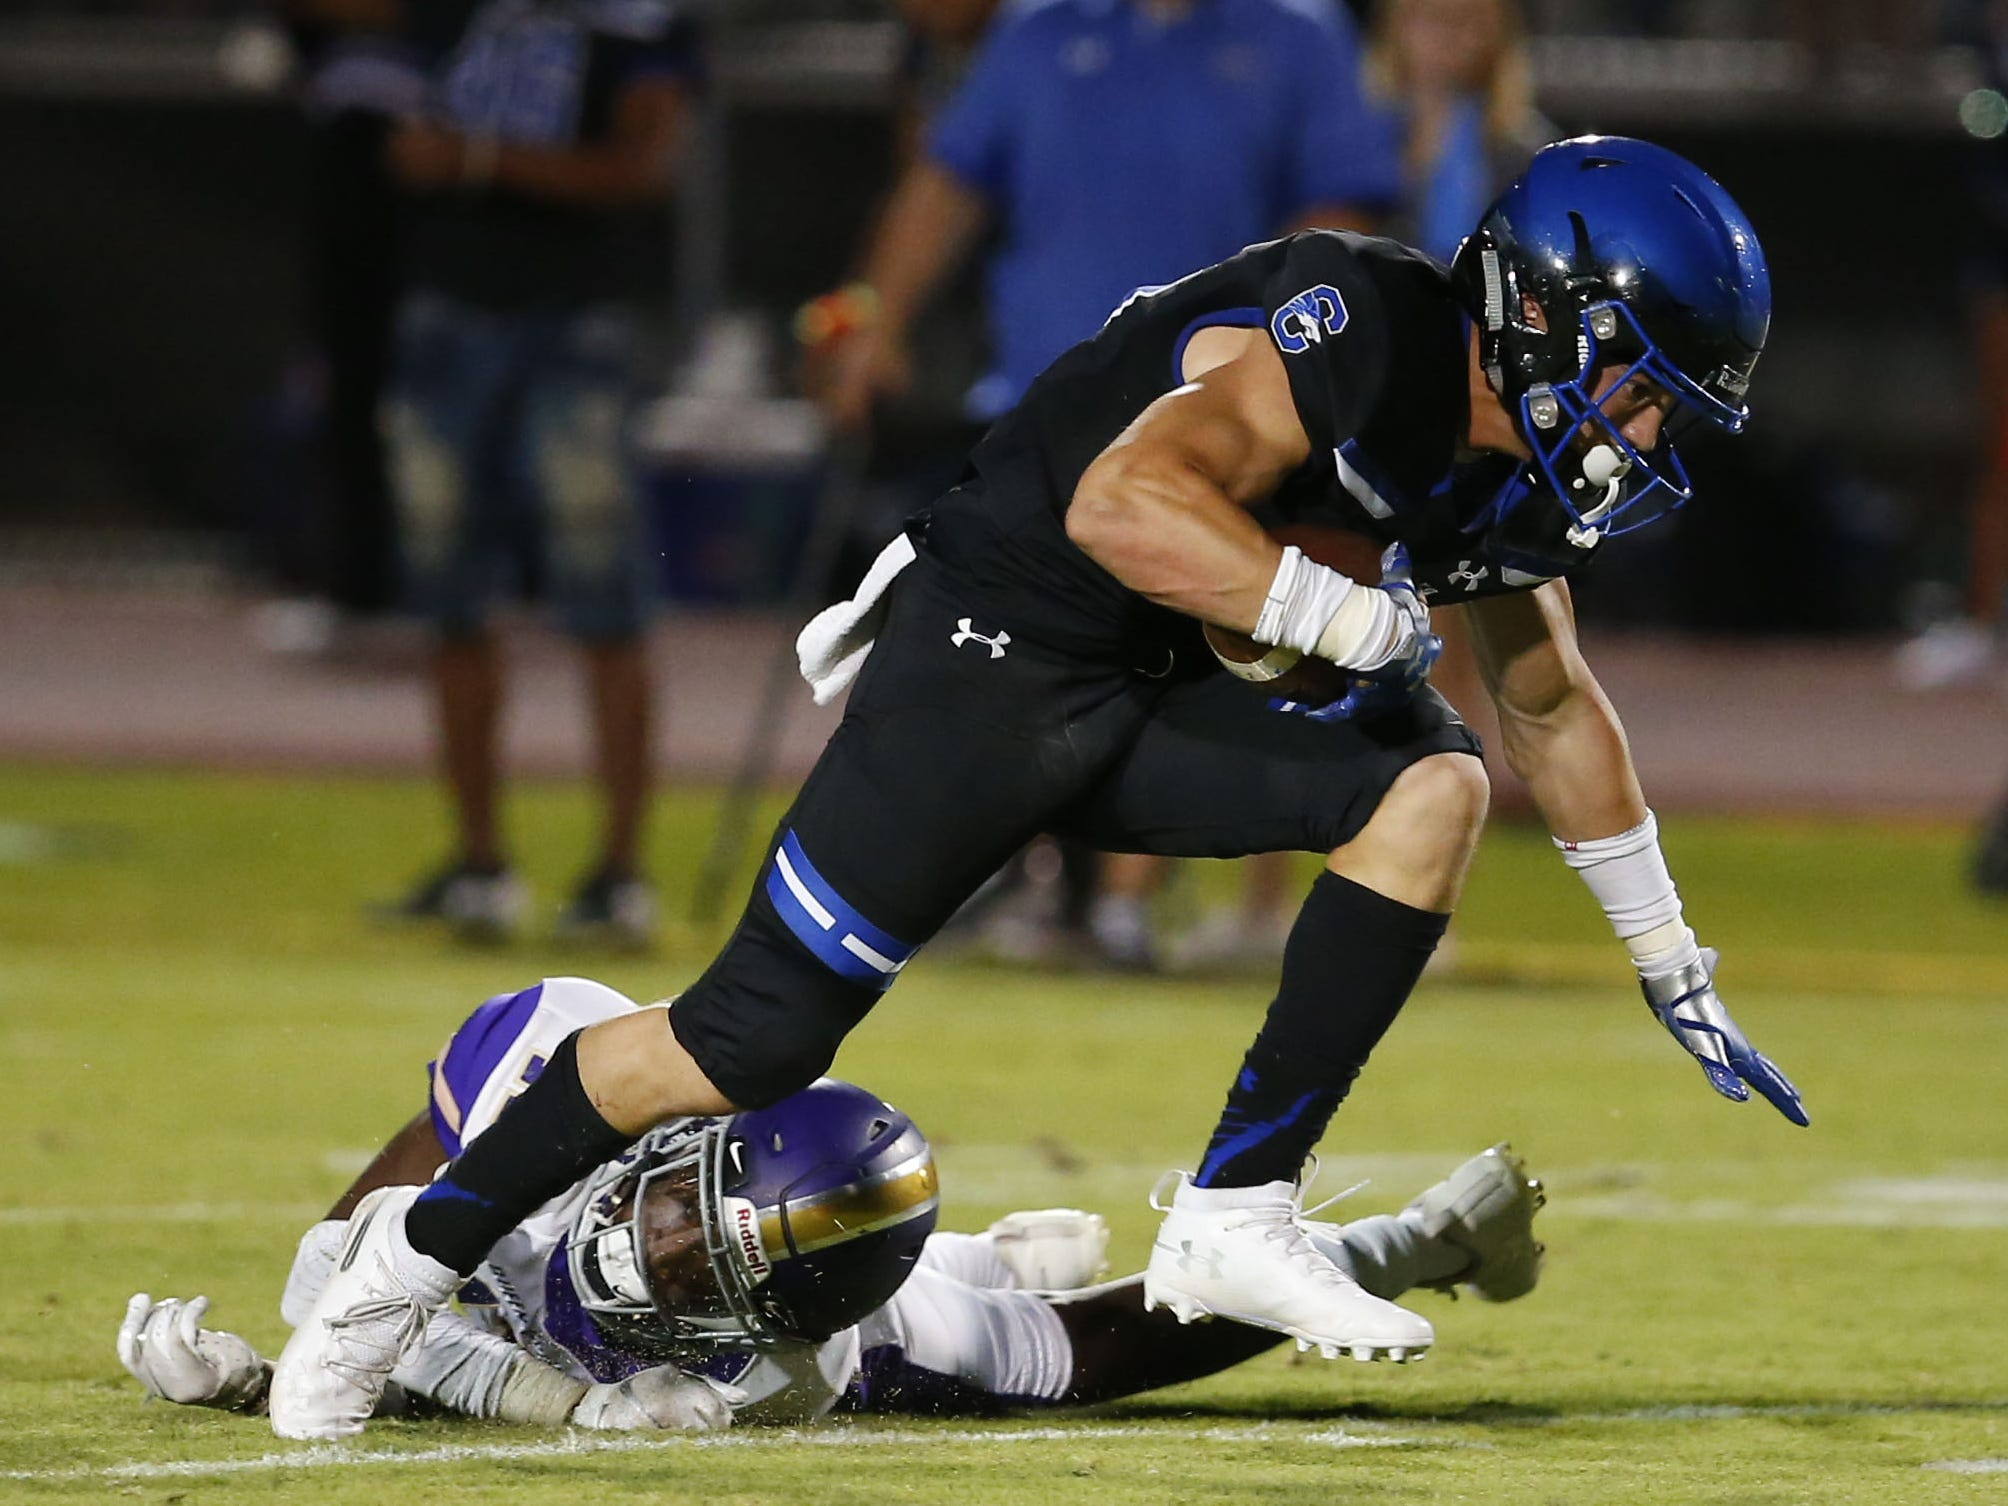 Chandler Gunner Maldanado (13) breaks a tackle by Queen Creek Dartanyon Sneed (11) during a high school football at Chandler High on August 24, 2018. #azhsfb